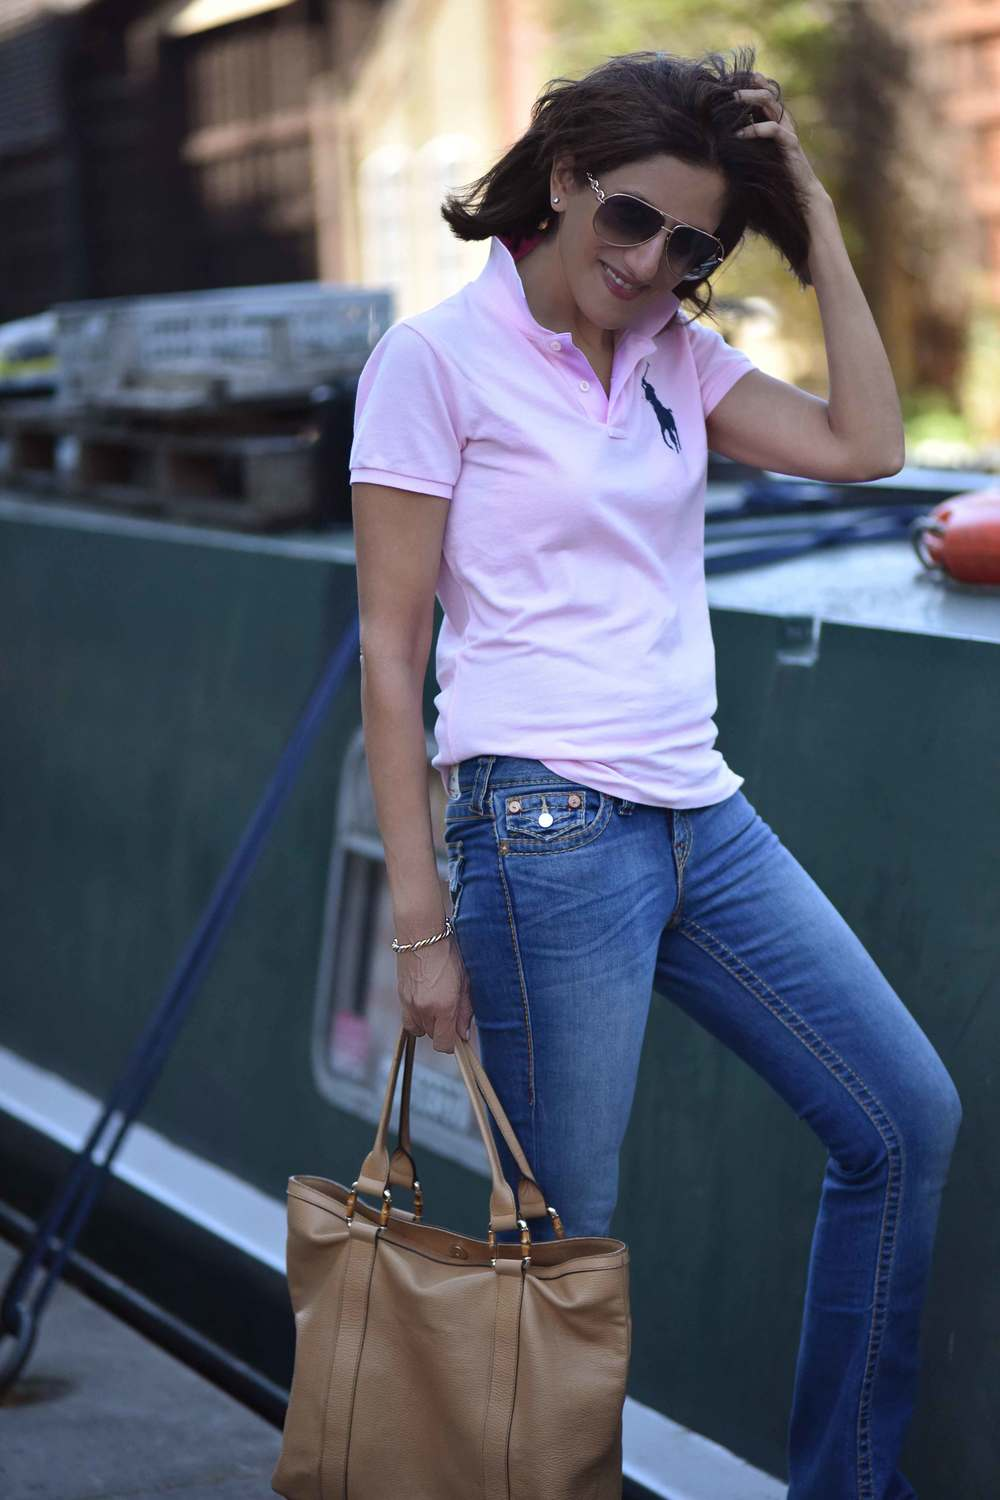 Ralph Lauren skinny polo tee, True Religion jeans, Gucci tote bag, London. Image©sourcingstyle.com